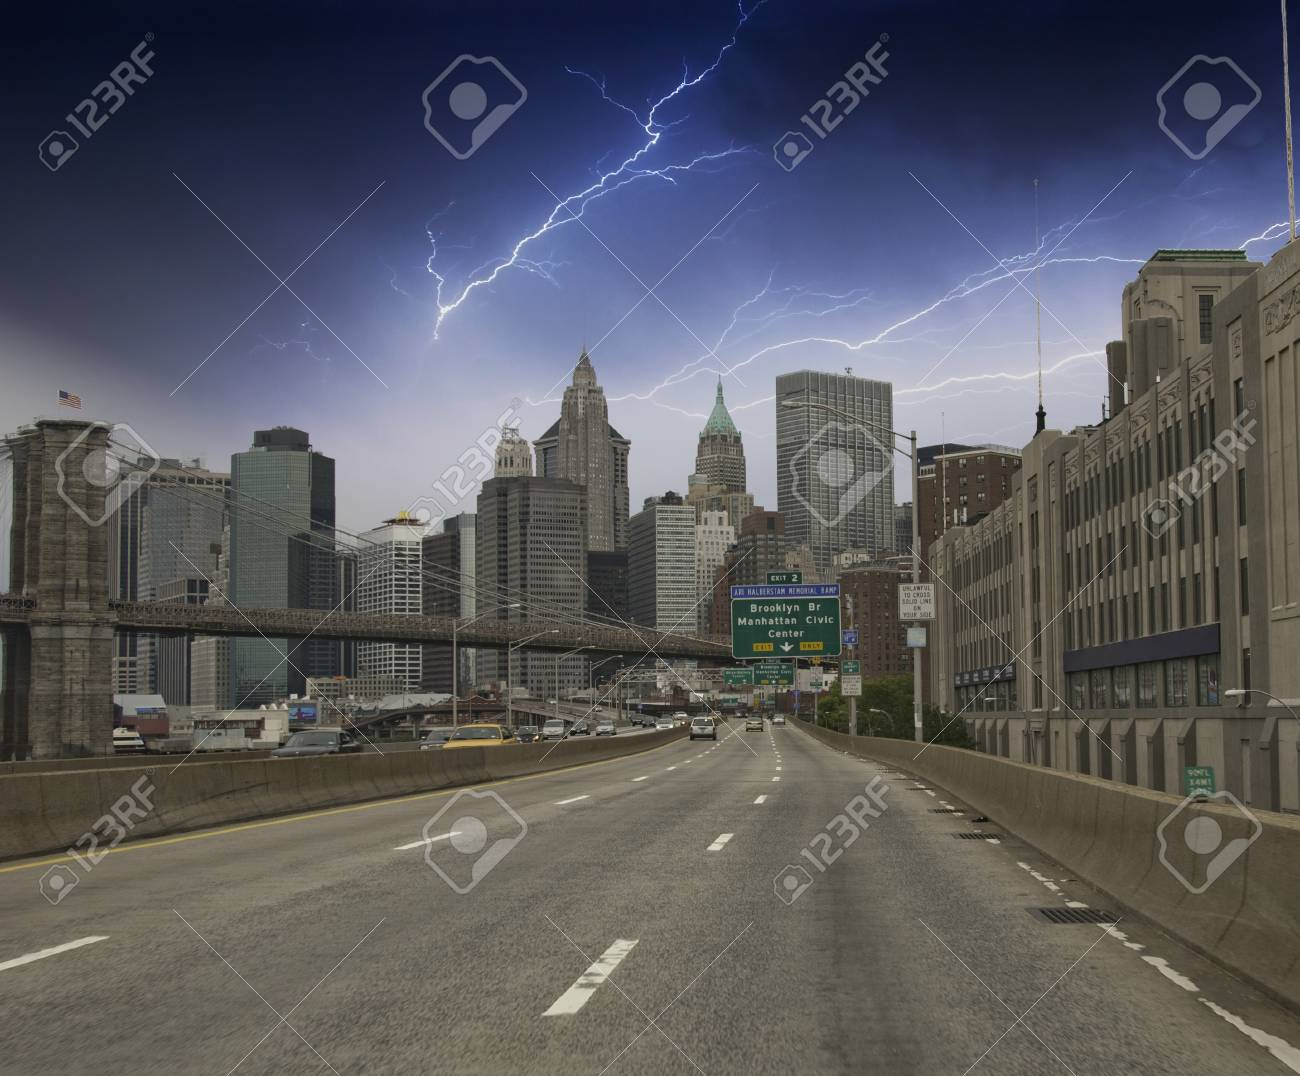 Clouds over New York City Skyscrapers, U.S.A. Stock Photo - 12201554